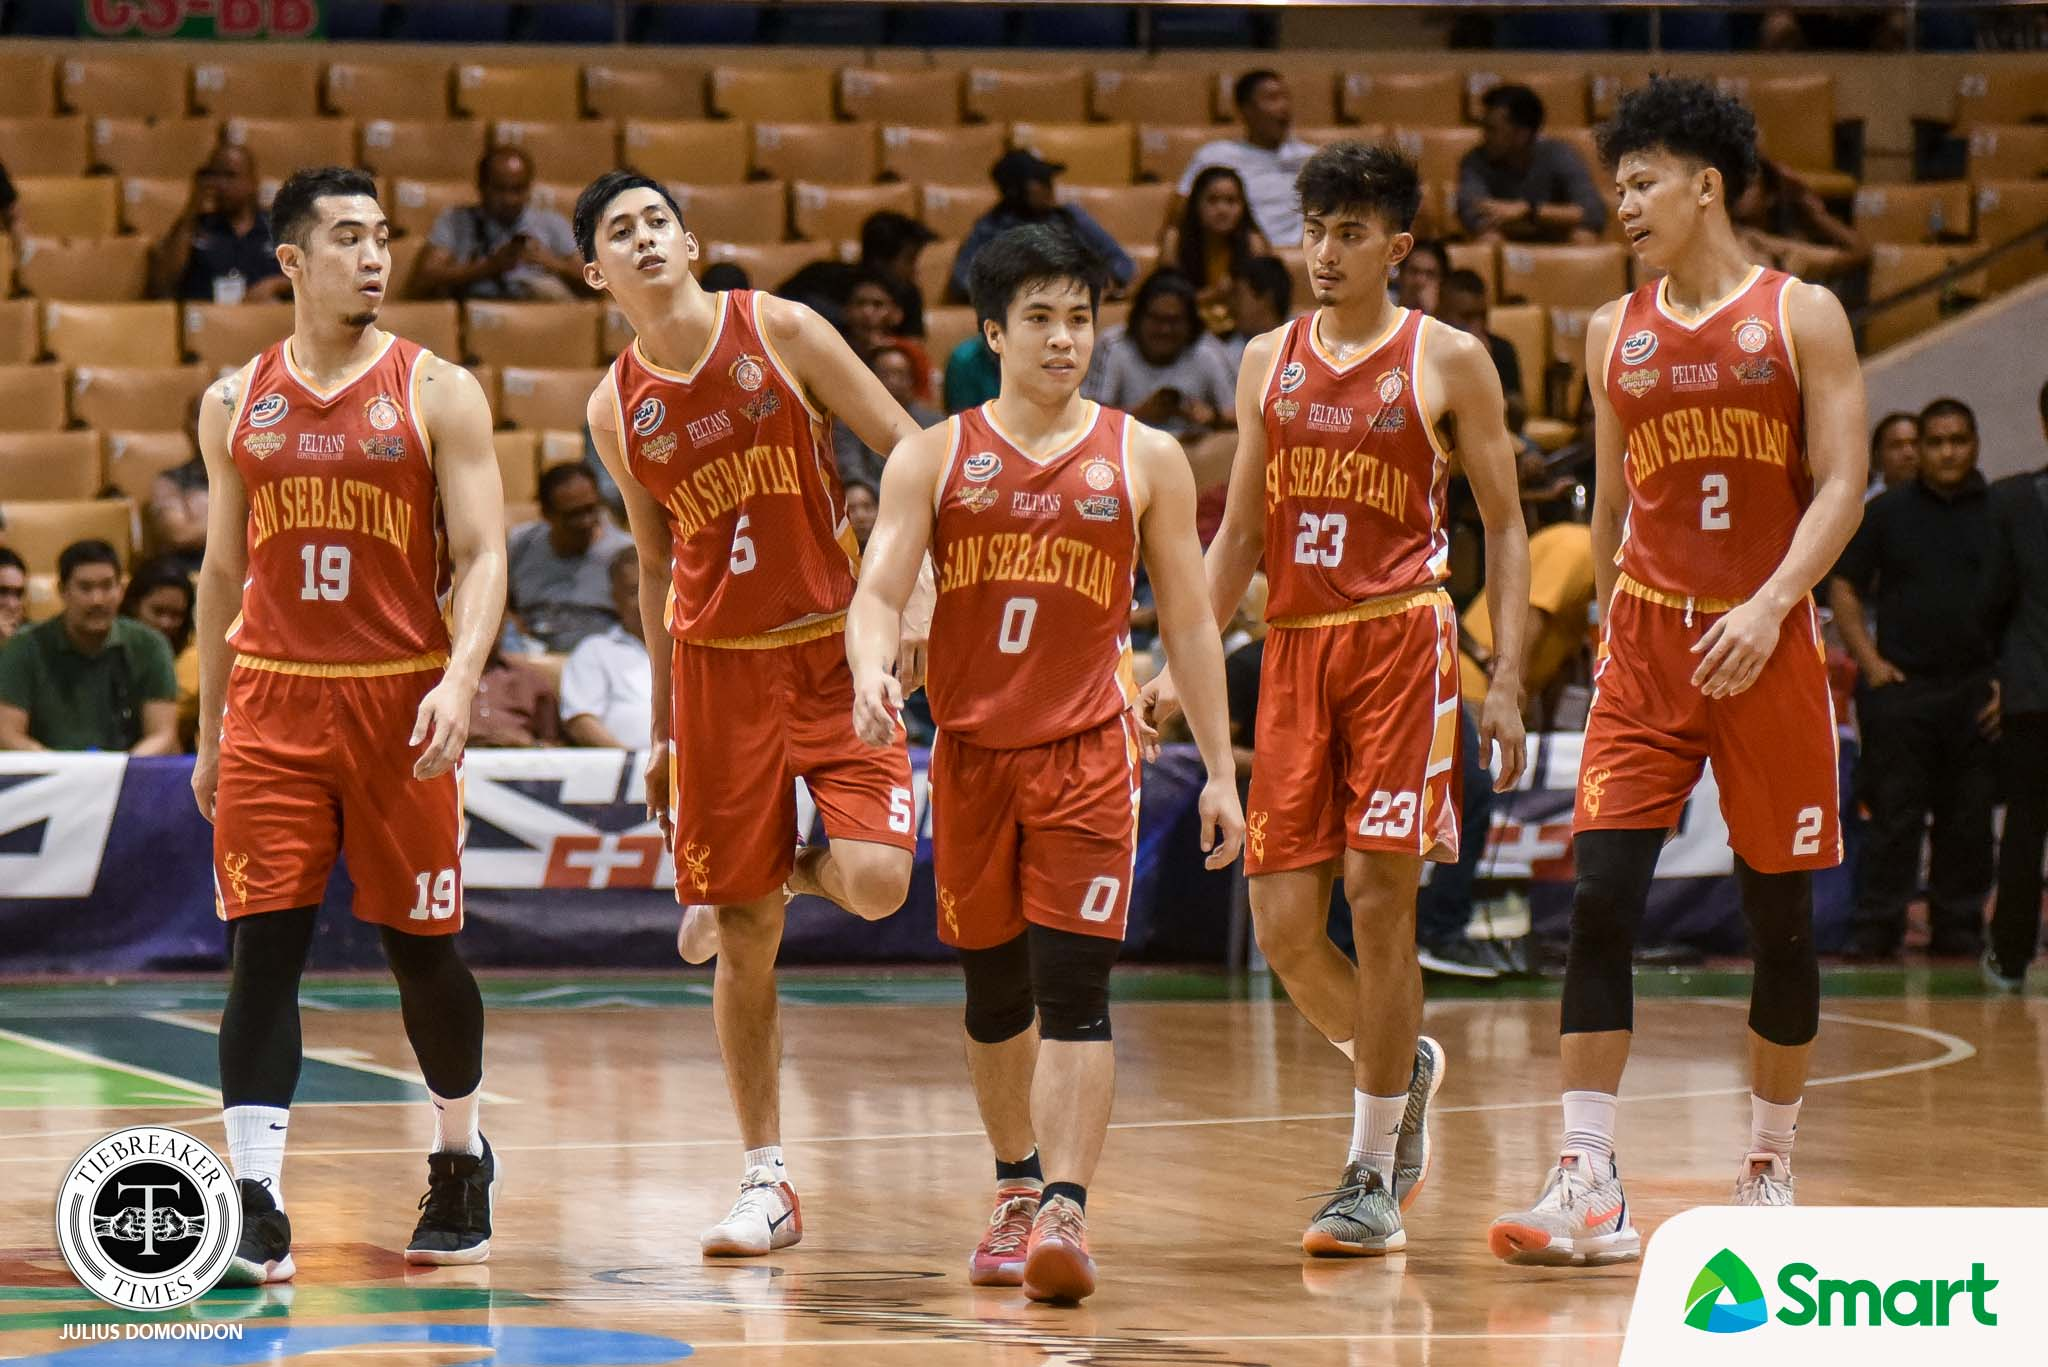 Tiebreaker Times RK Ilagan gave it his all for his seniors Basketball NCAA News SSC-R  San Sebastian Seniors Basketball RK Ilagan NCAA Season 95 Seniors Basketball NCAA Season 95 Jerrick Balanza allyn bulando